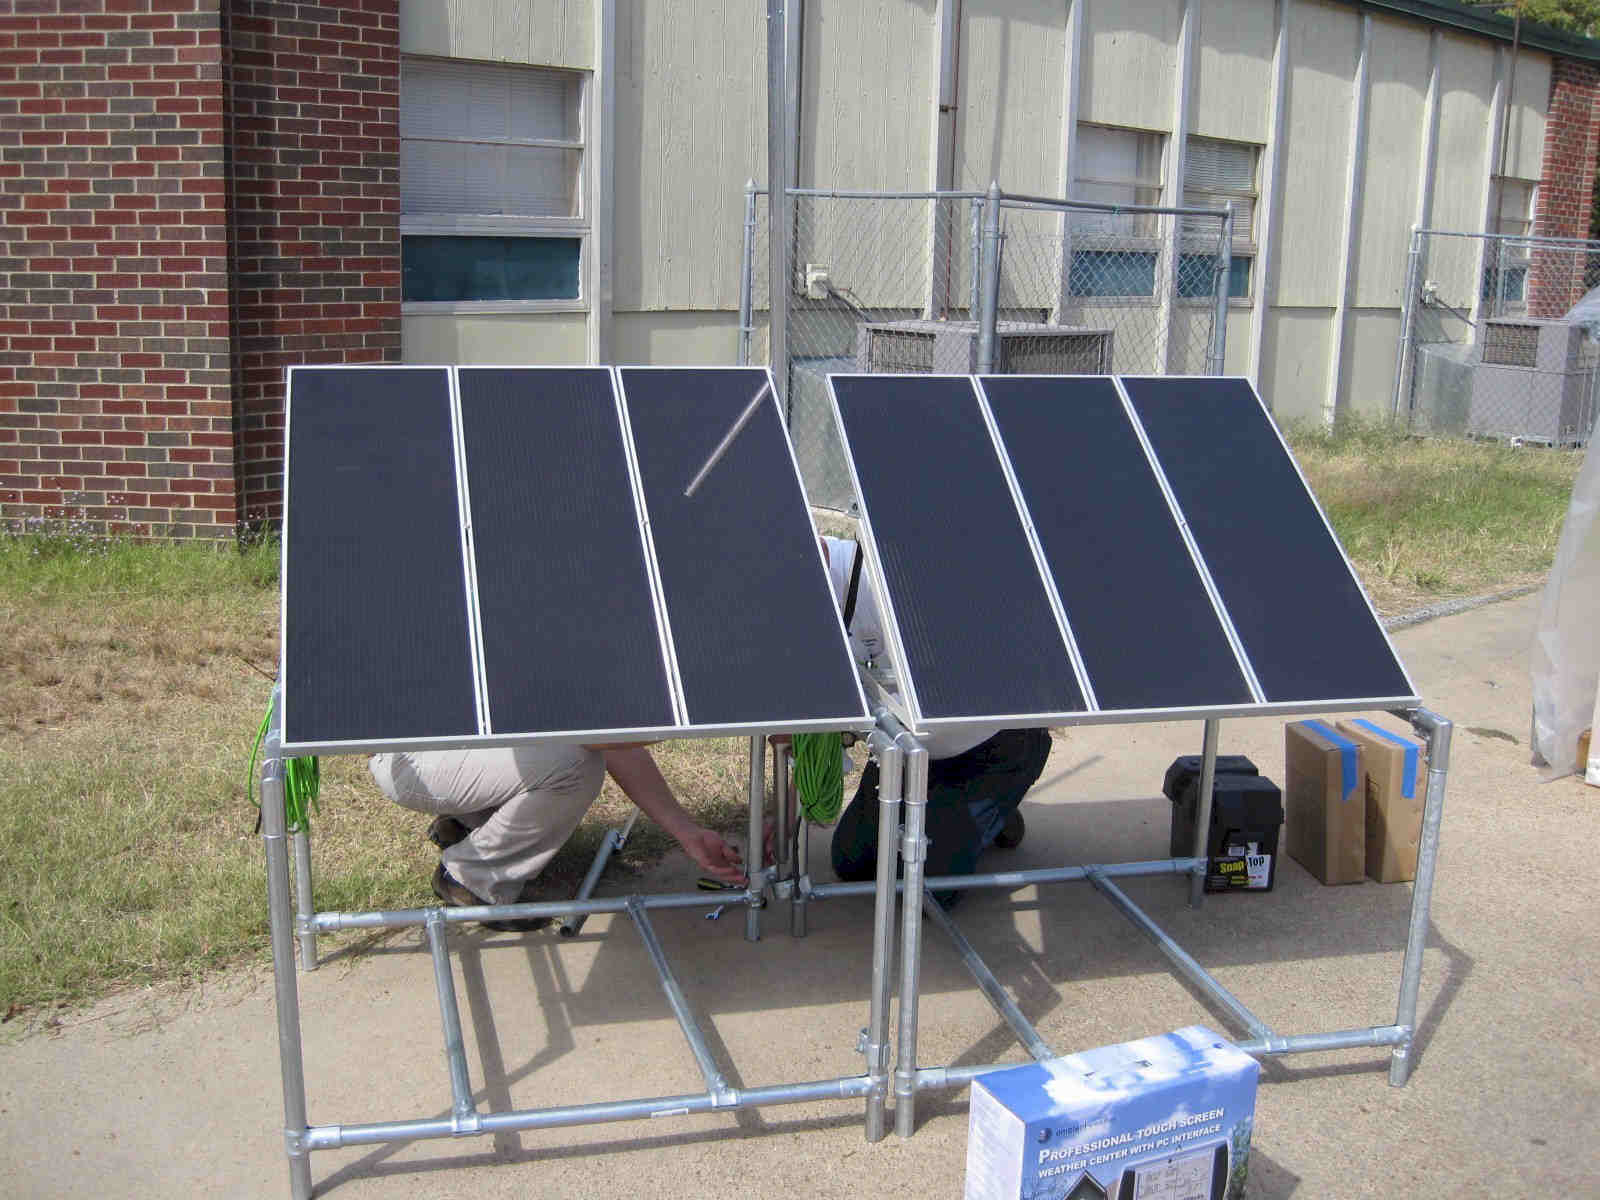 Delivering and setting up the solar panel array.